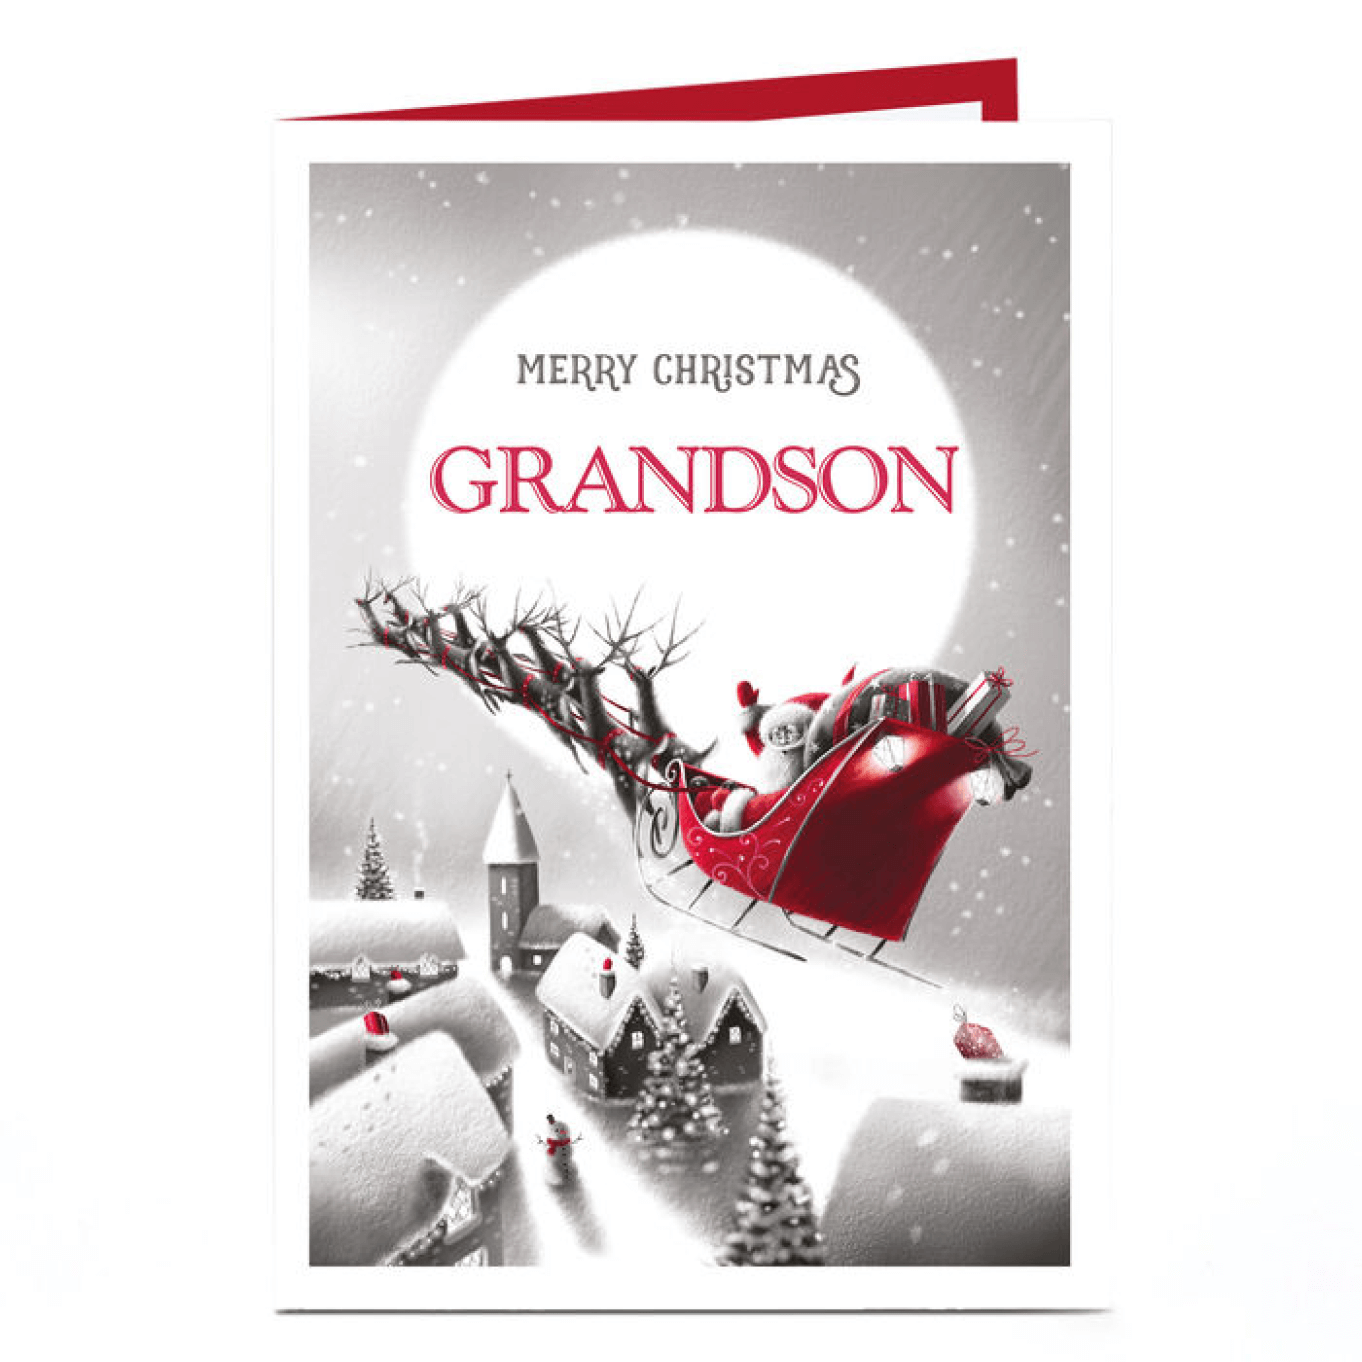 Christmas Cards Buy Personalised Charity Xmas Greetings Cards Online Uk Card Factory